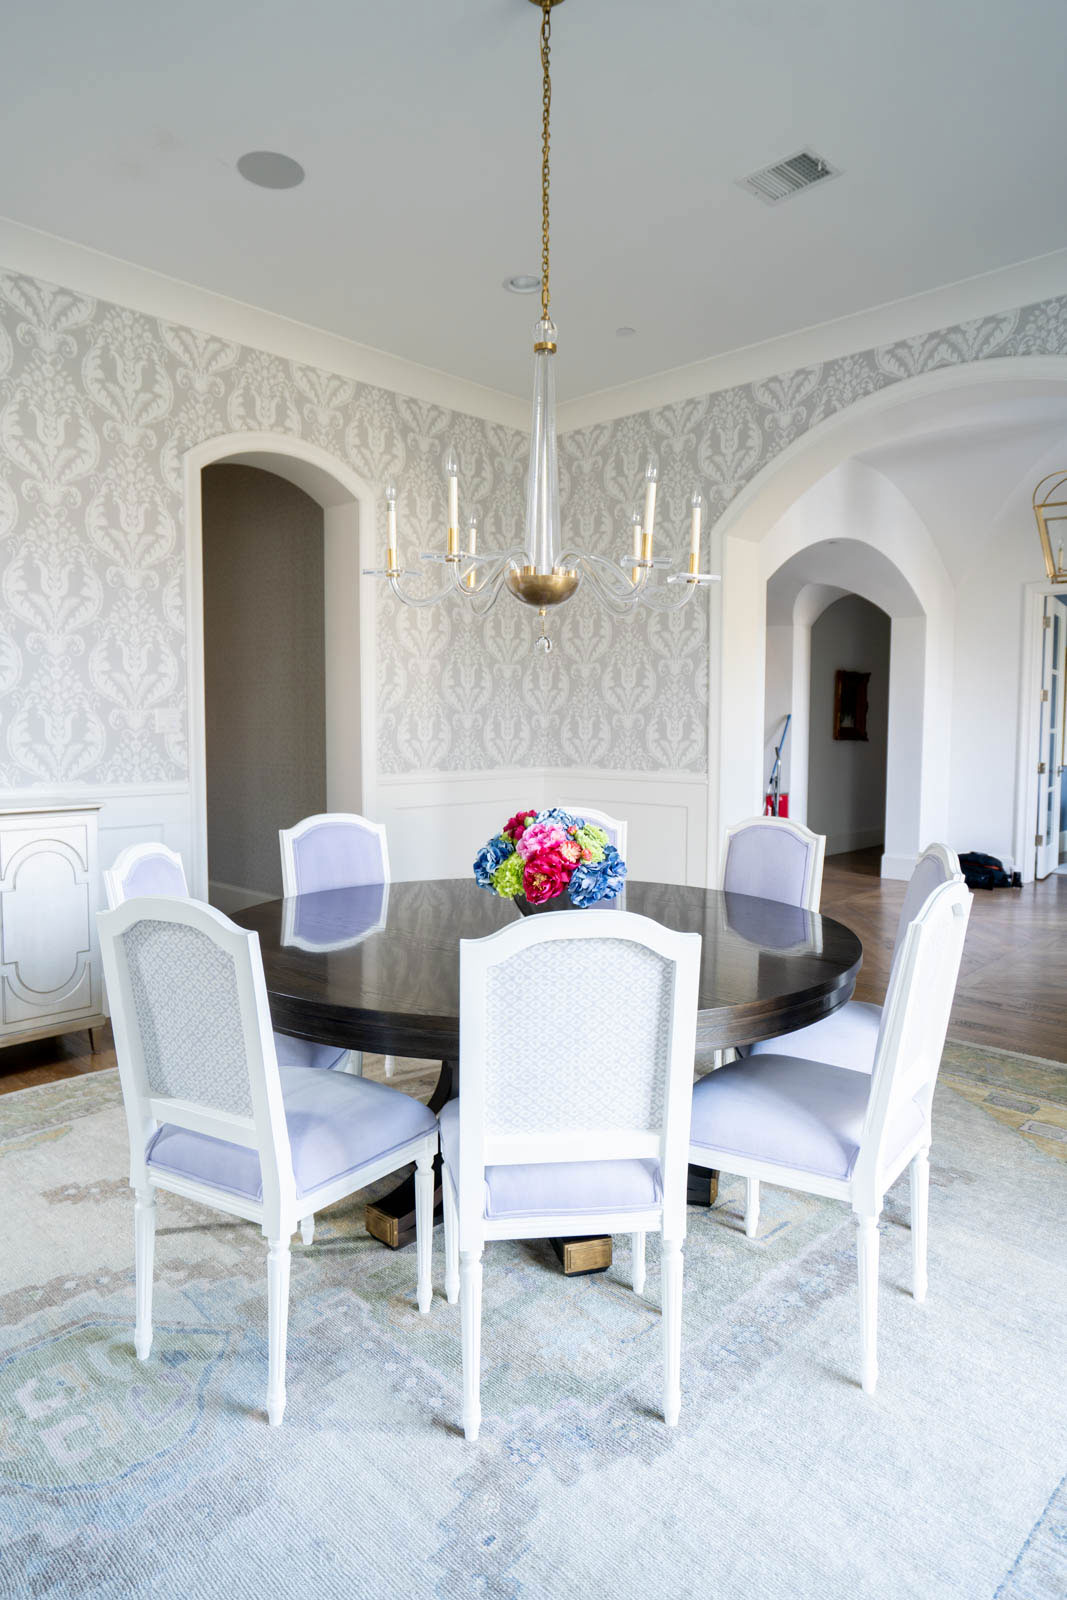 Wallpapered Dining Room with Round Table and Upholstered Chairs